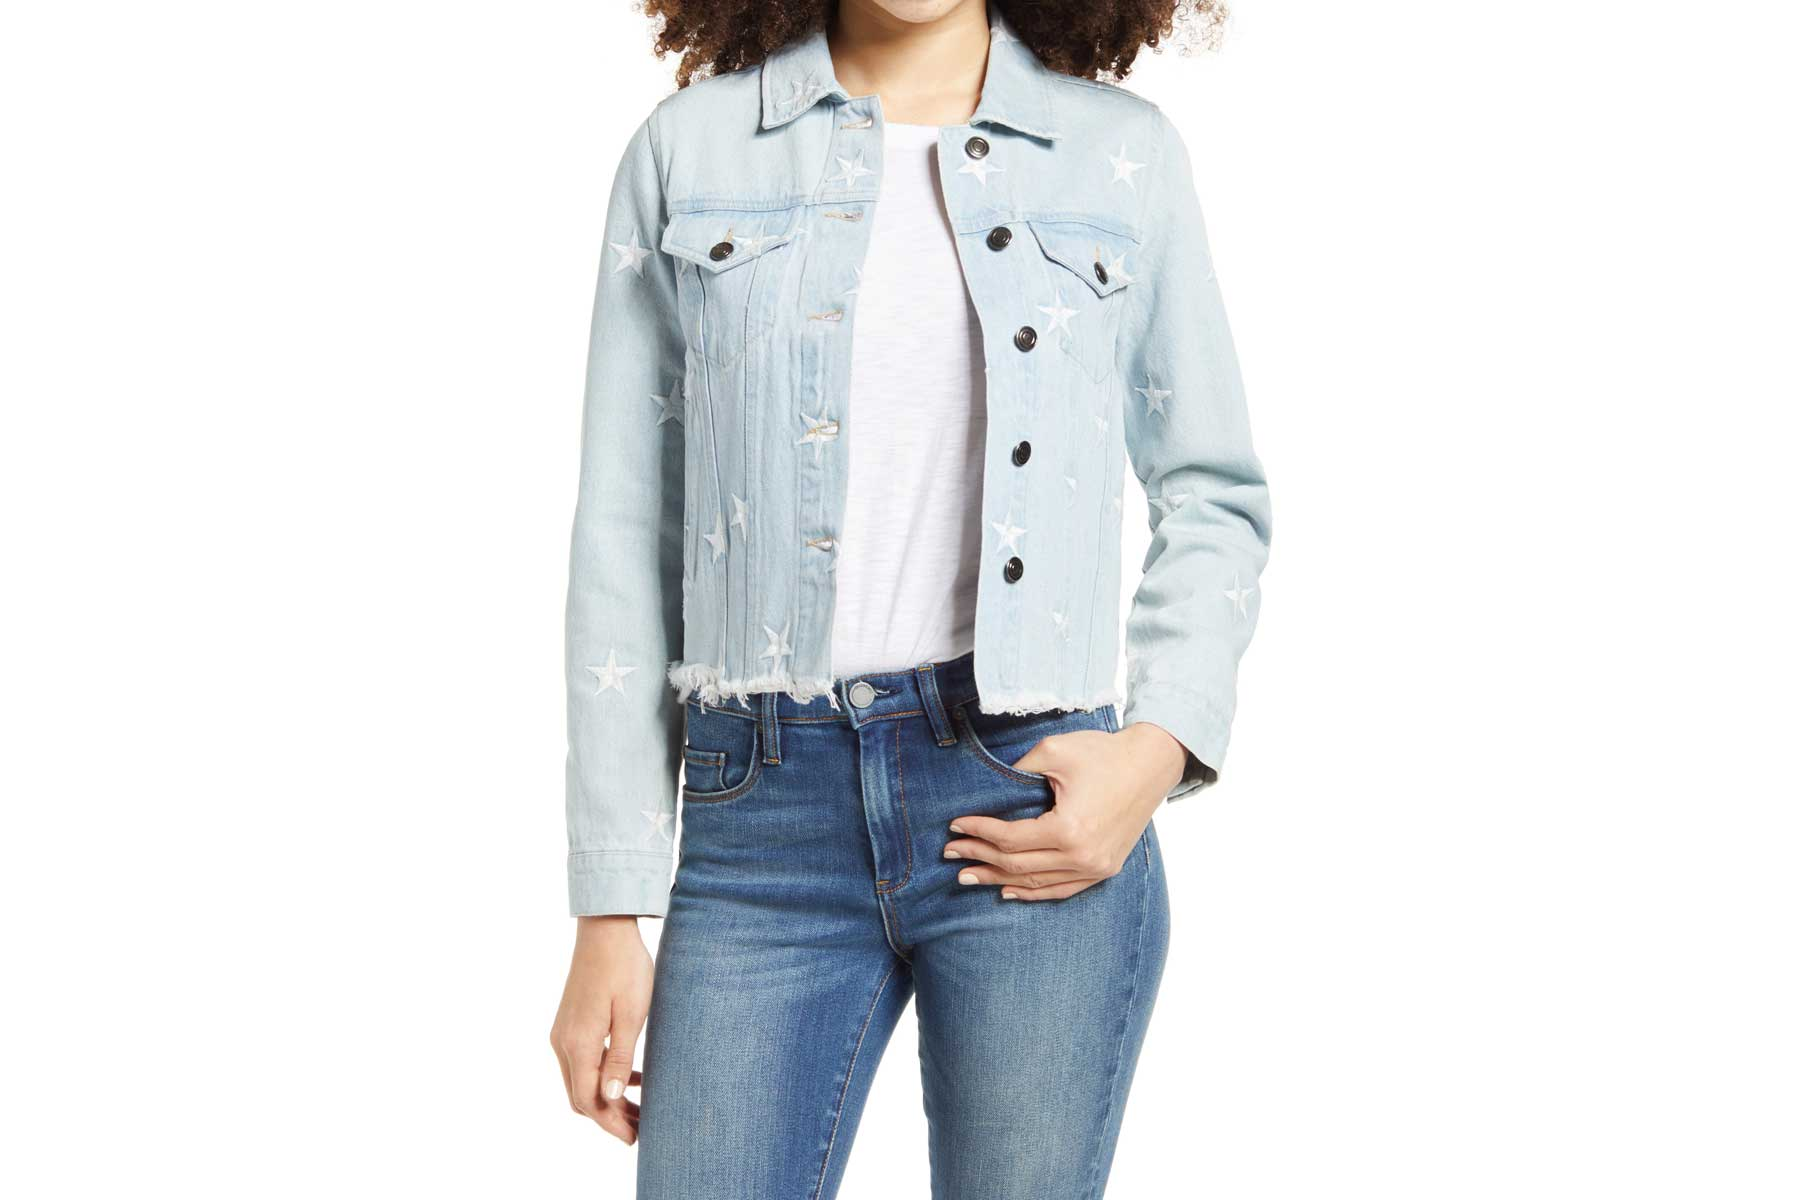 Know One Cares star embroidered denim jacket